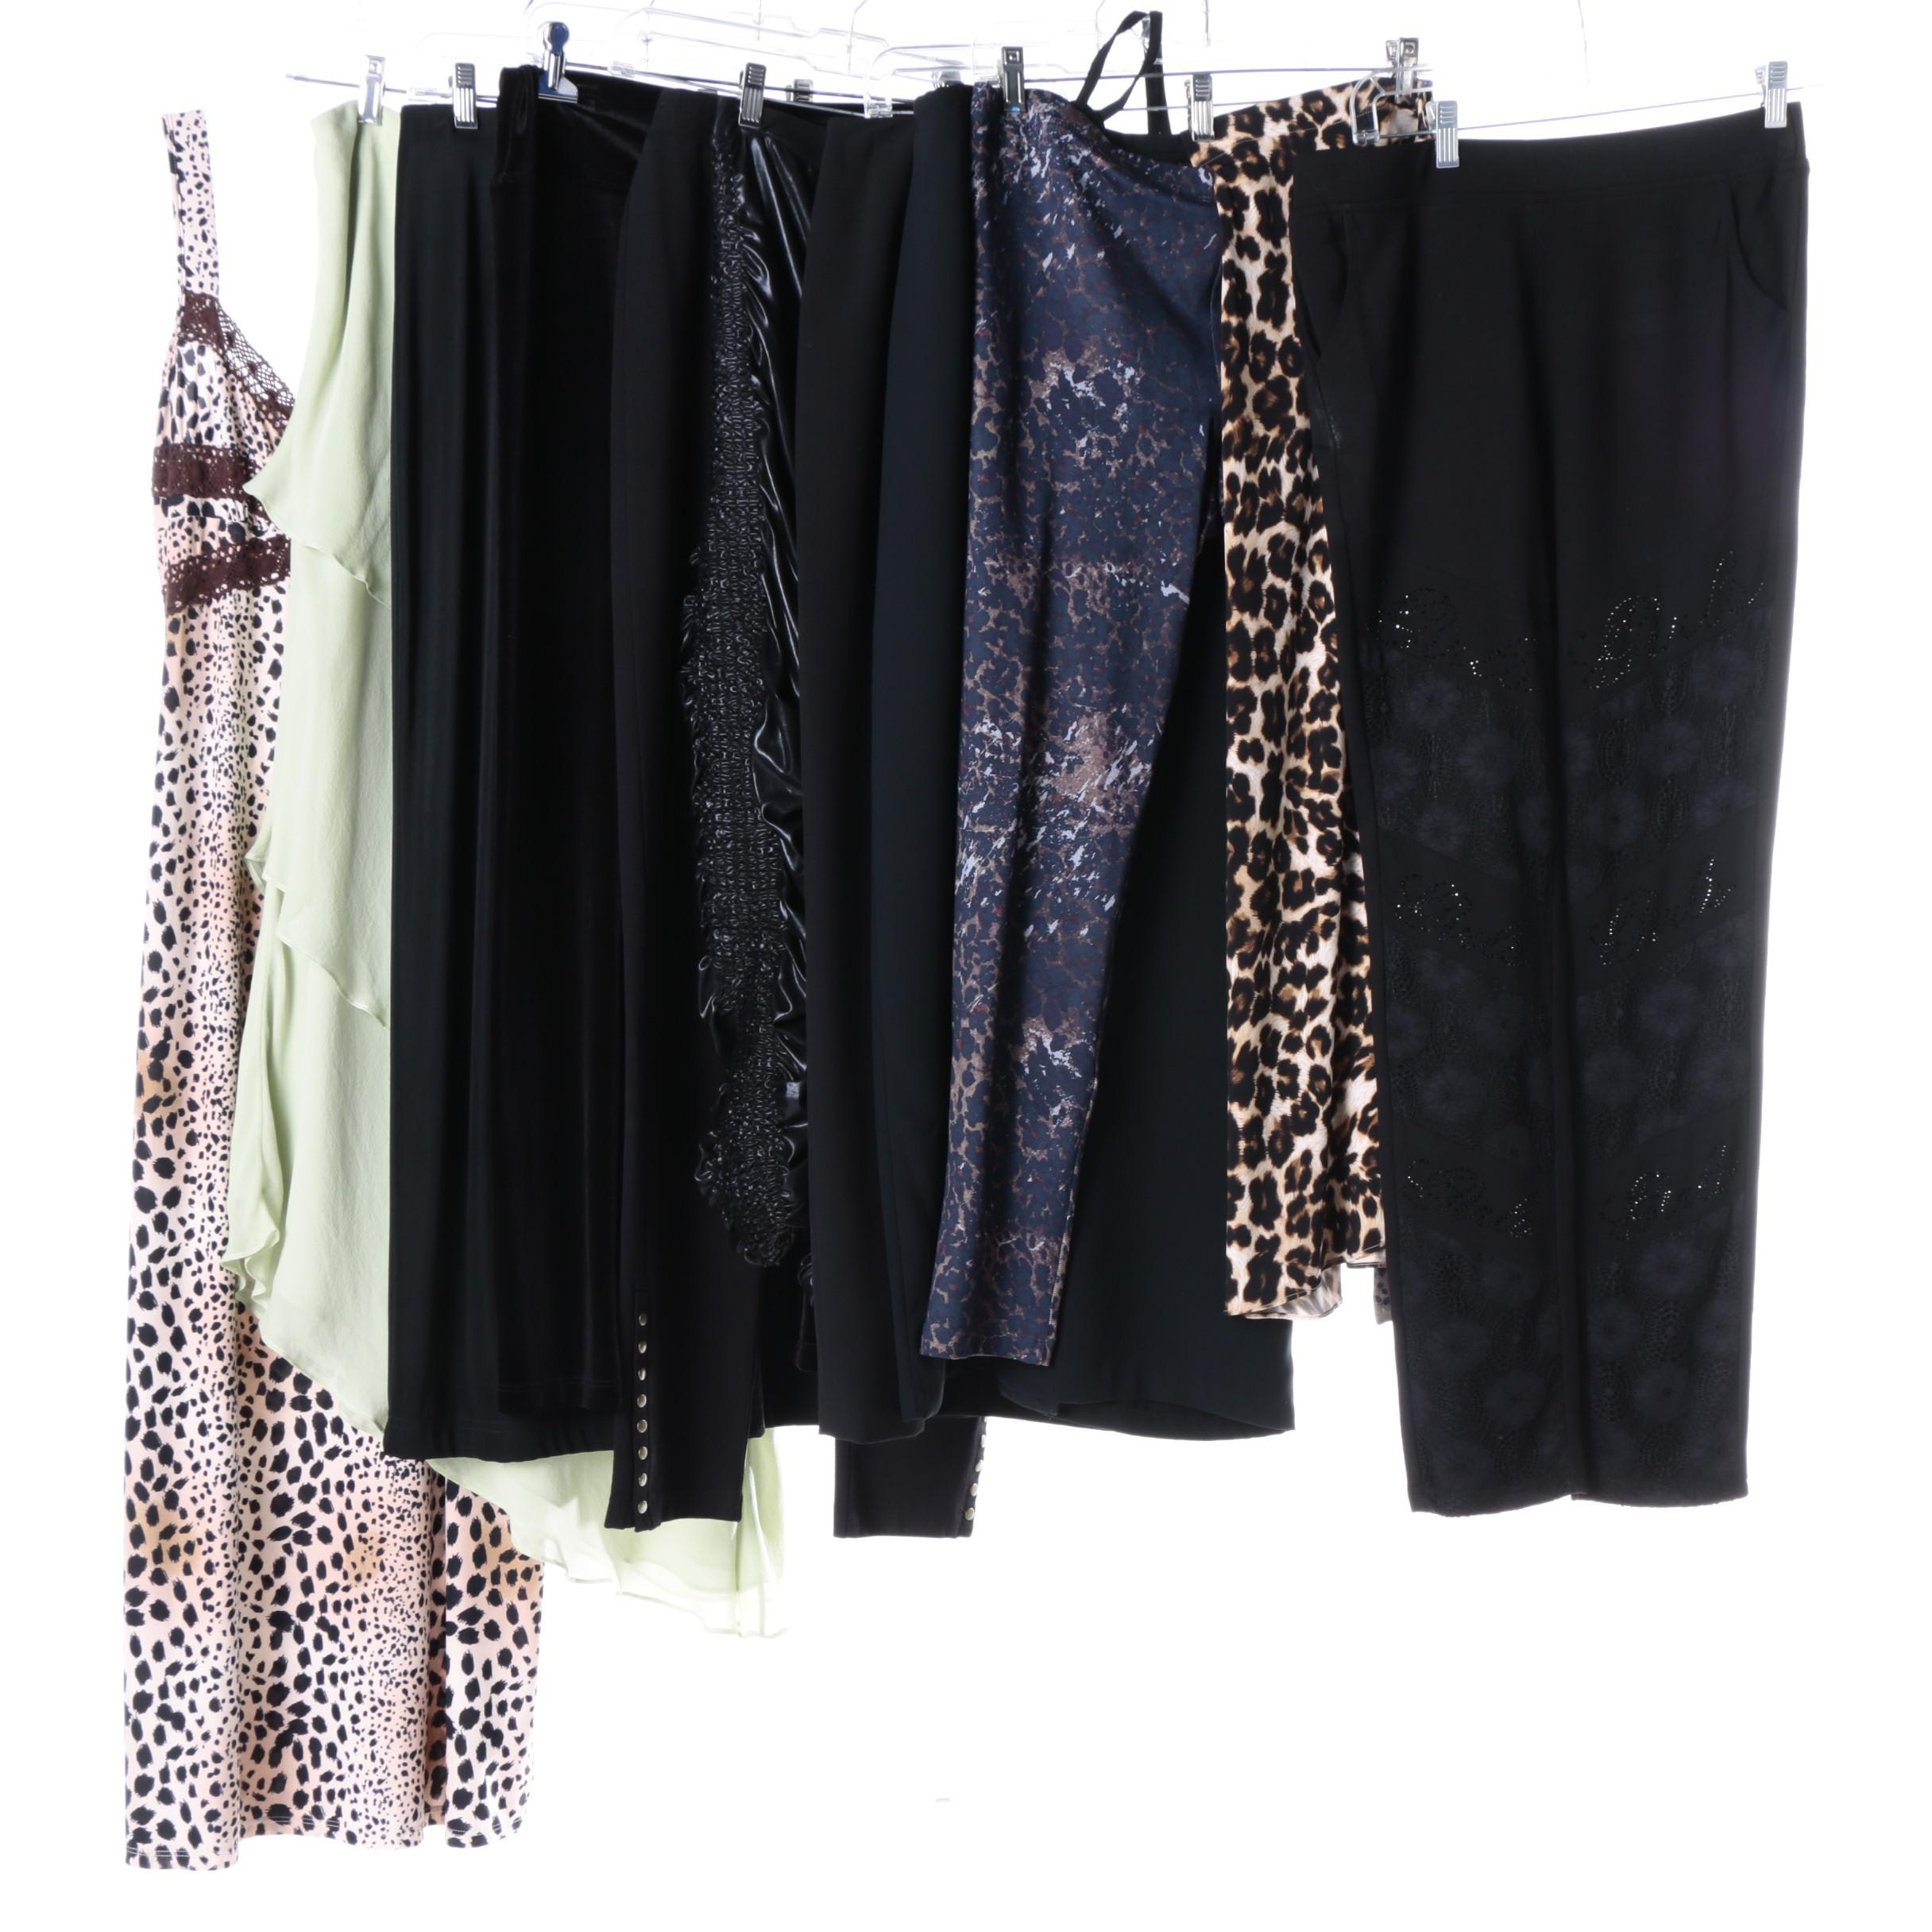 Women's Leggings, Pants and Dress